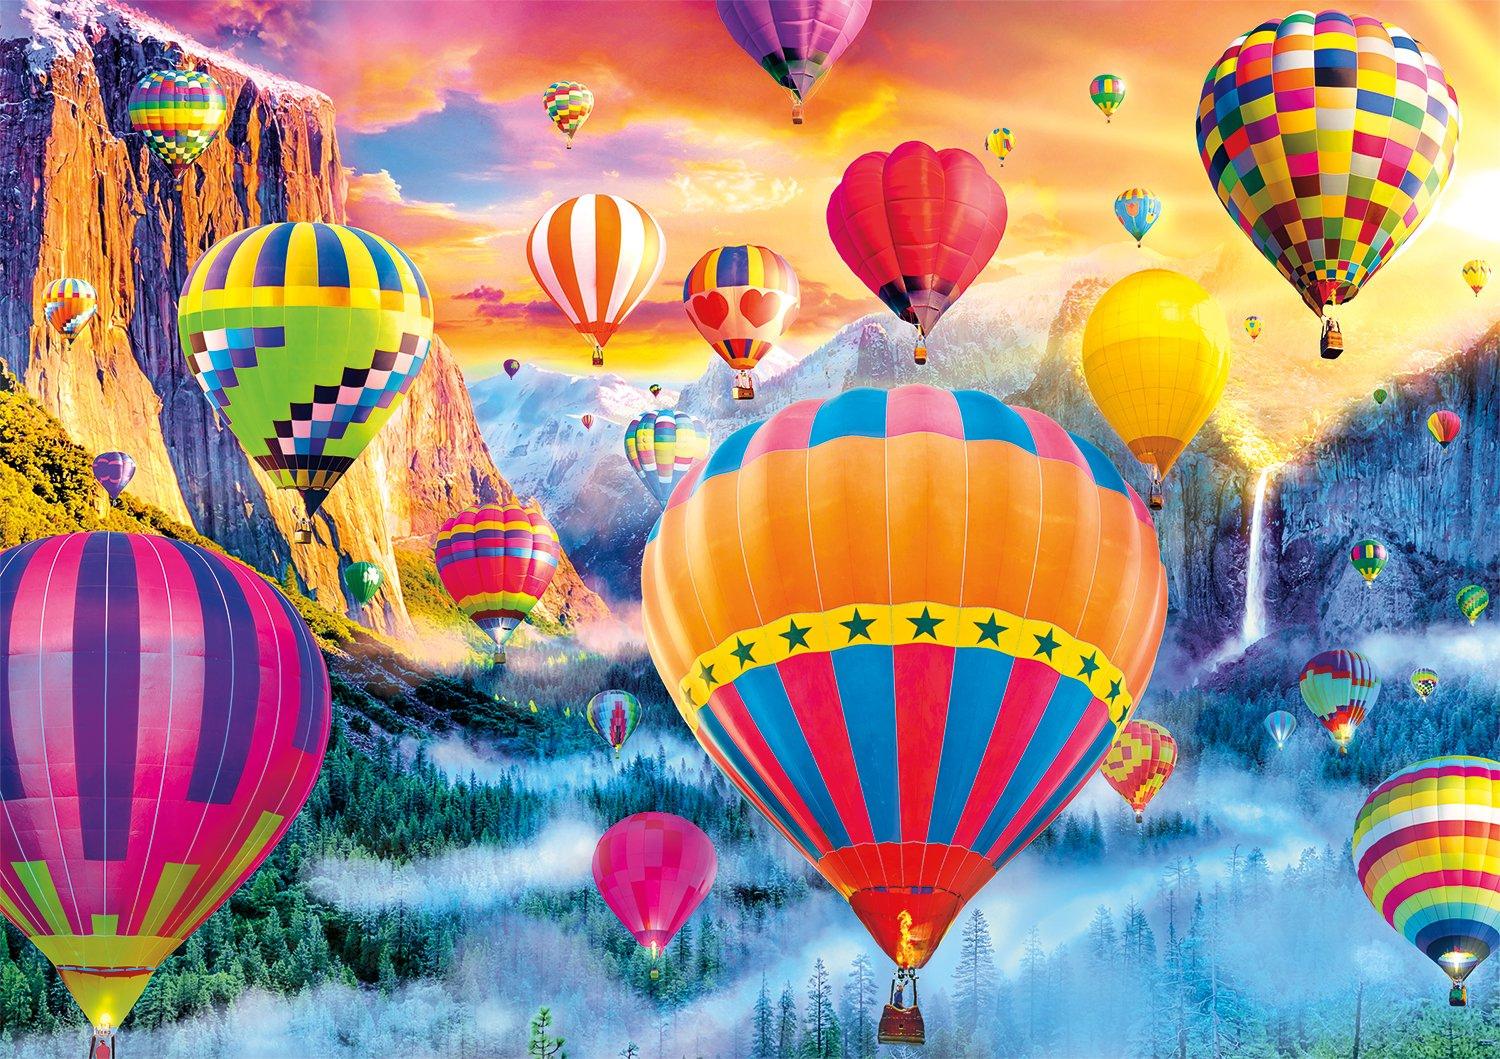 Buffalo Games - Vivid Collection - Balloon Valley - 300 Large Piece Jigsaw Puzzle